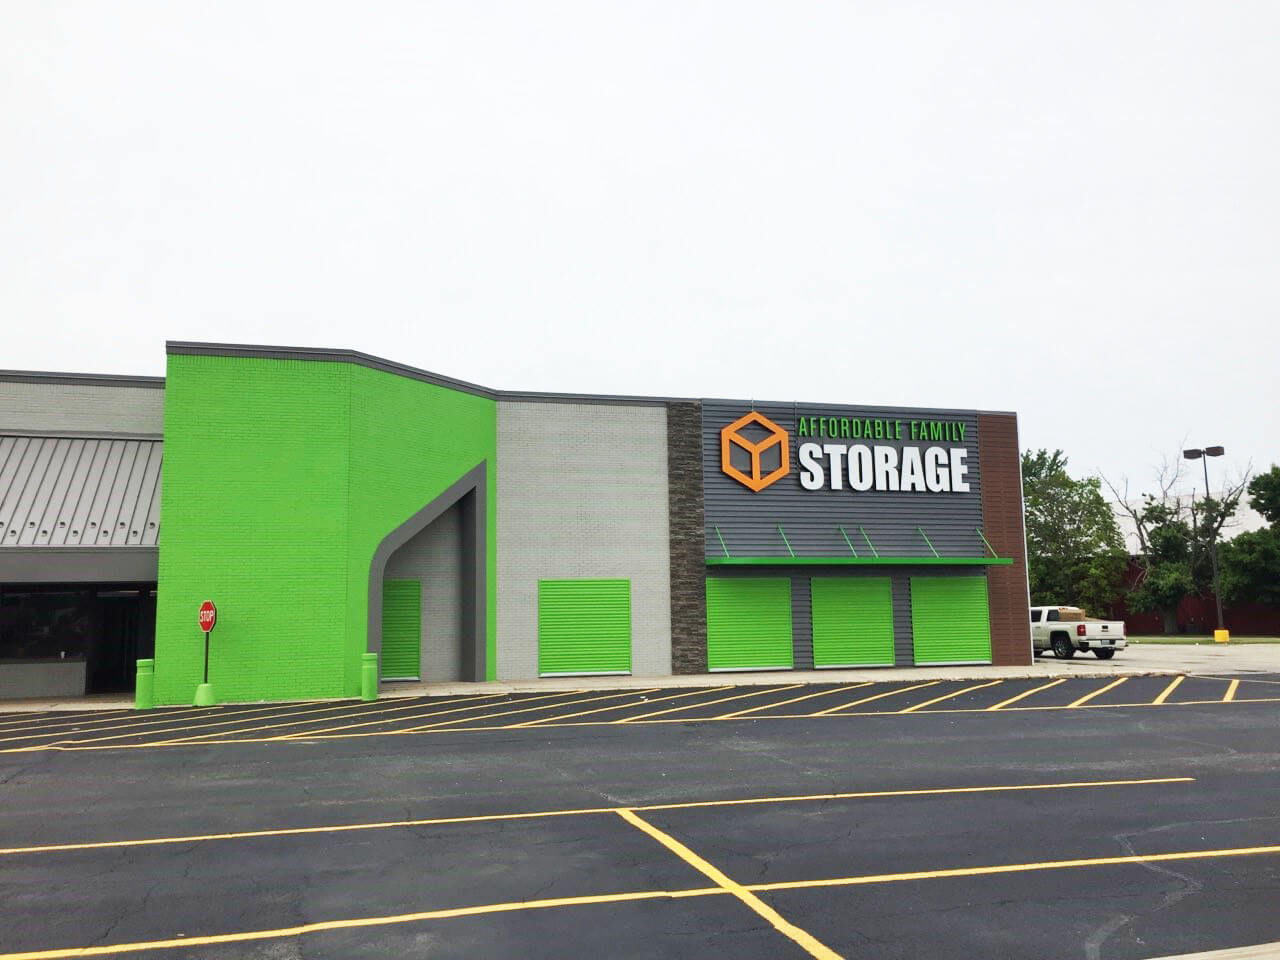 Affordable Family Storage - Muncie IN